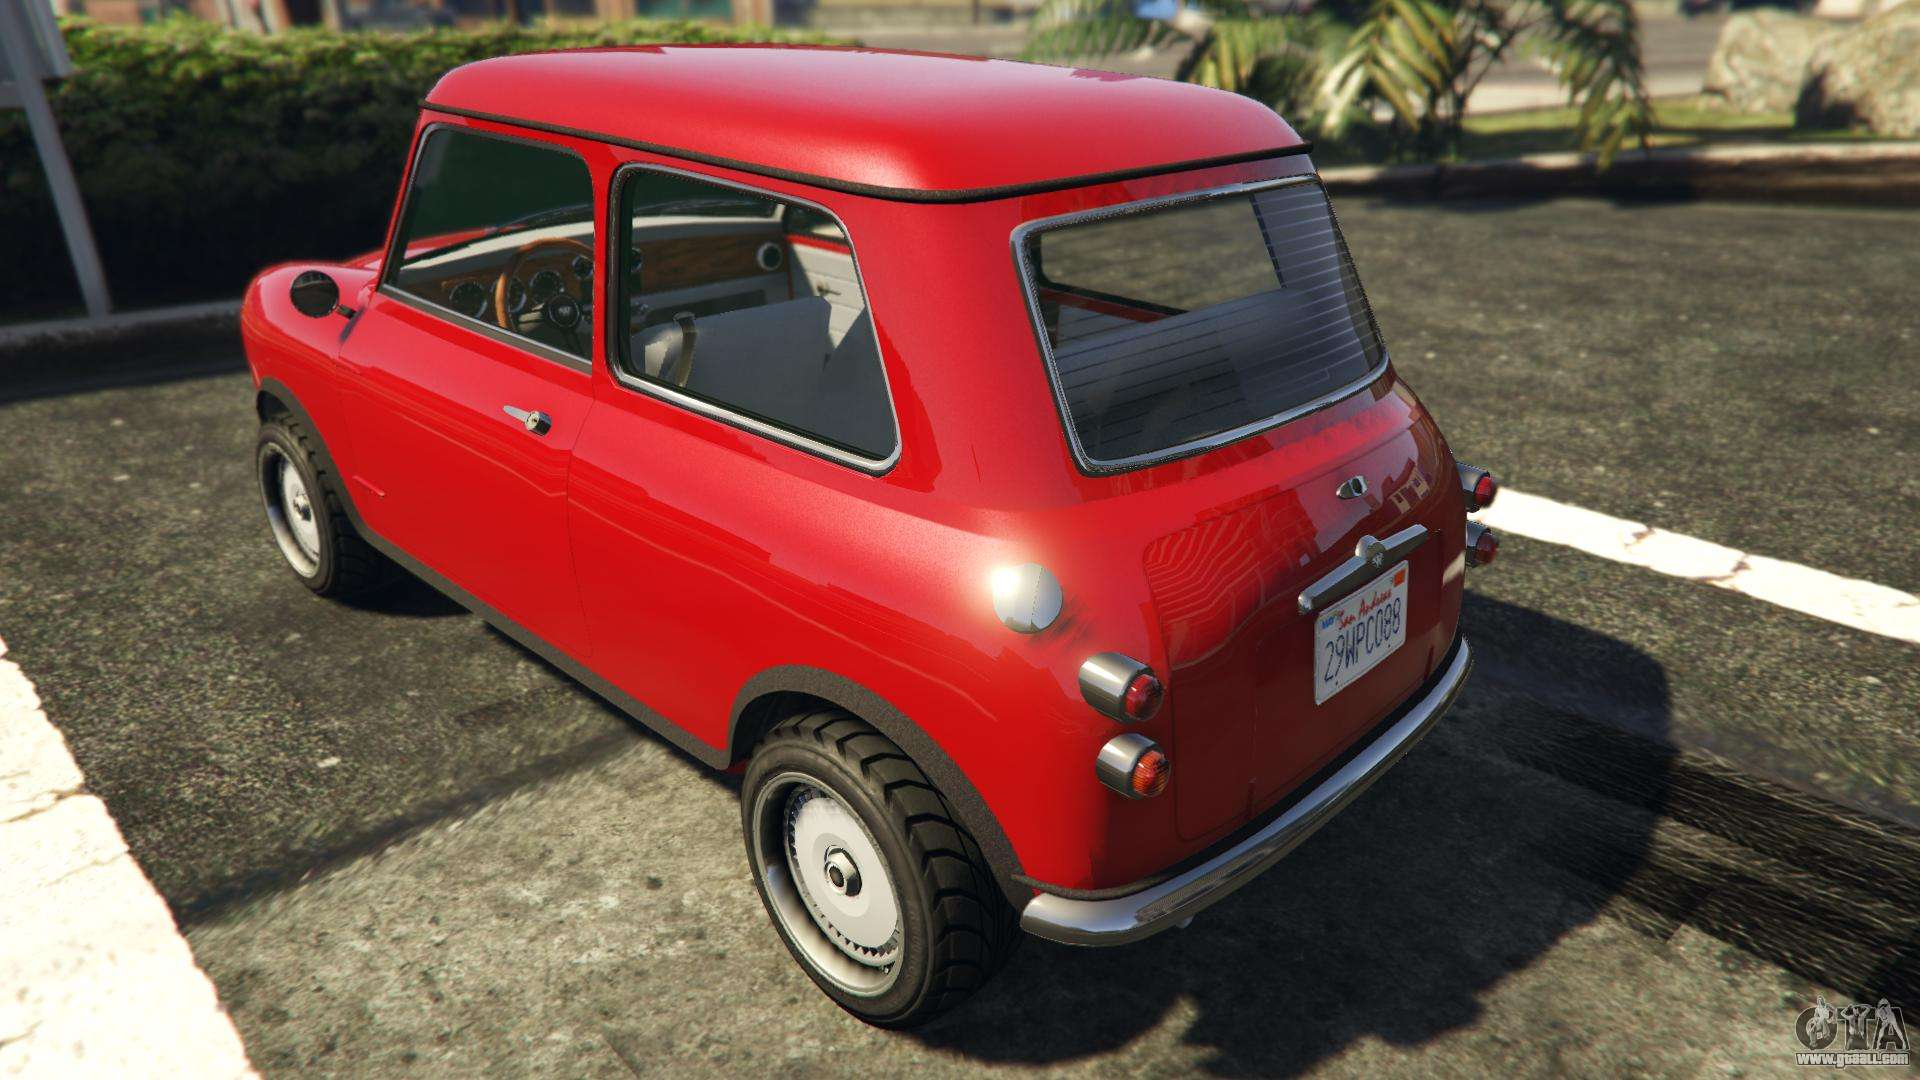 Weeny Issi Classic Gta 5 Online Where To Find And To Buy And Sell